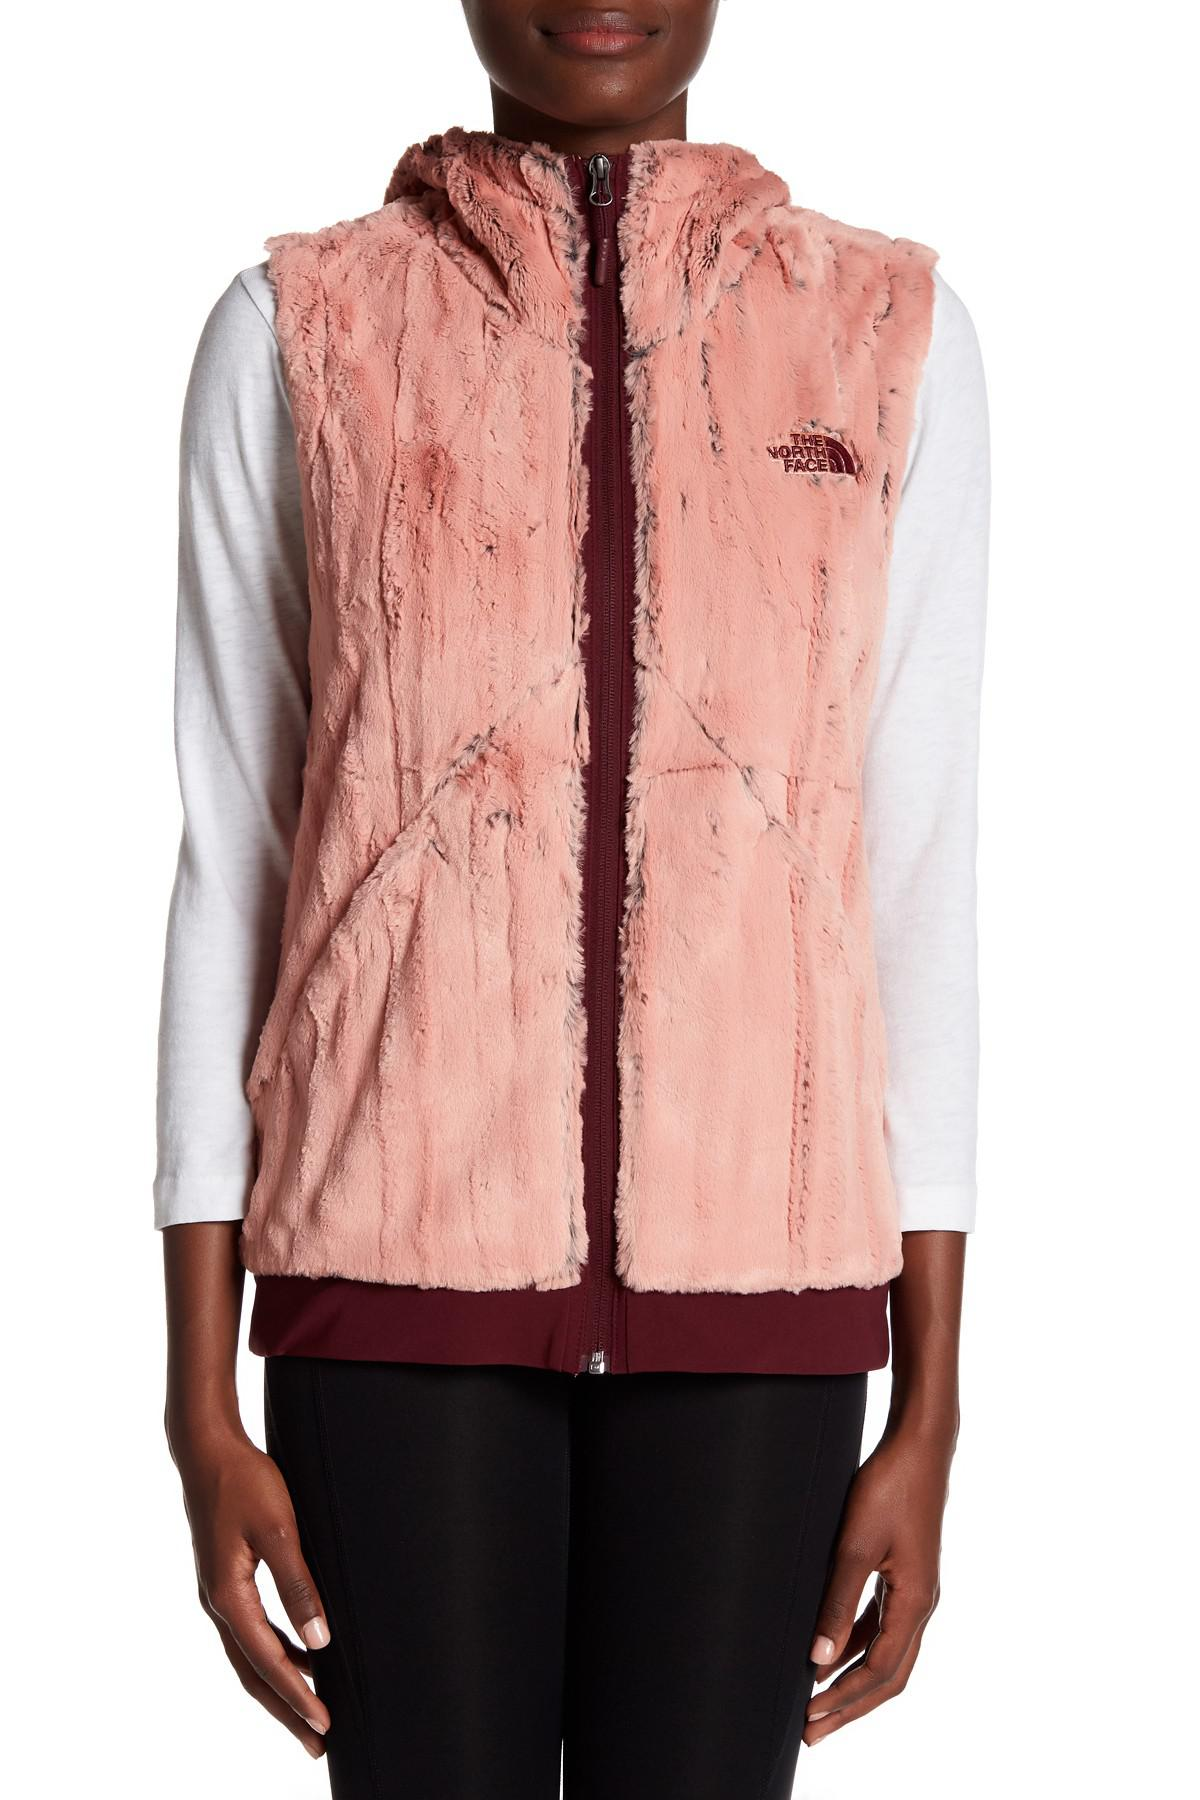 193c3e4617a8 Lyst - The North Face Furlander Faux Fur Vest in Pink